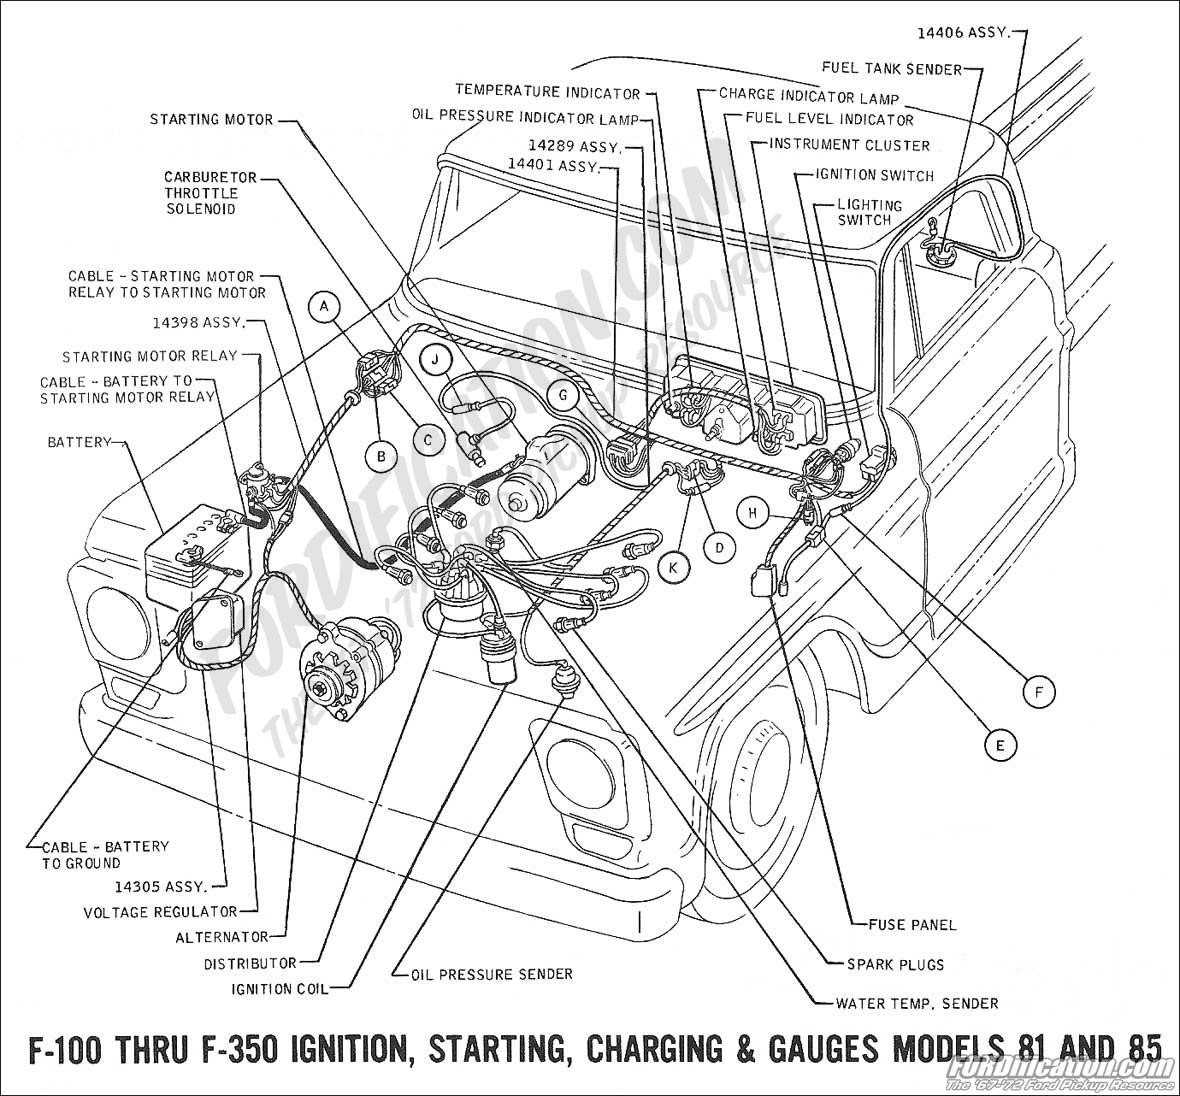 1972 ford f100 ke light wiring diagram 1972 ford f100